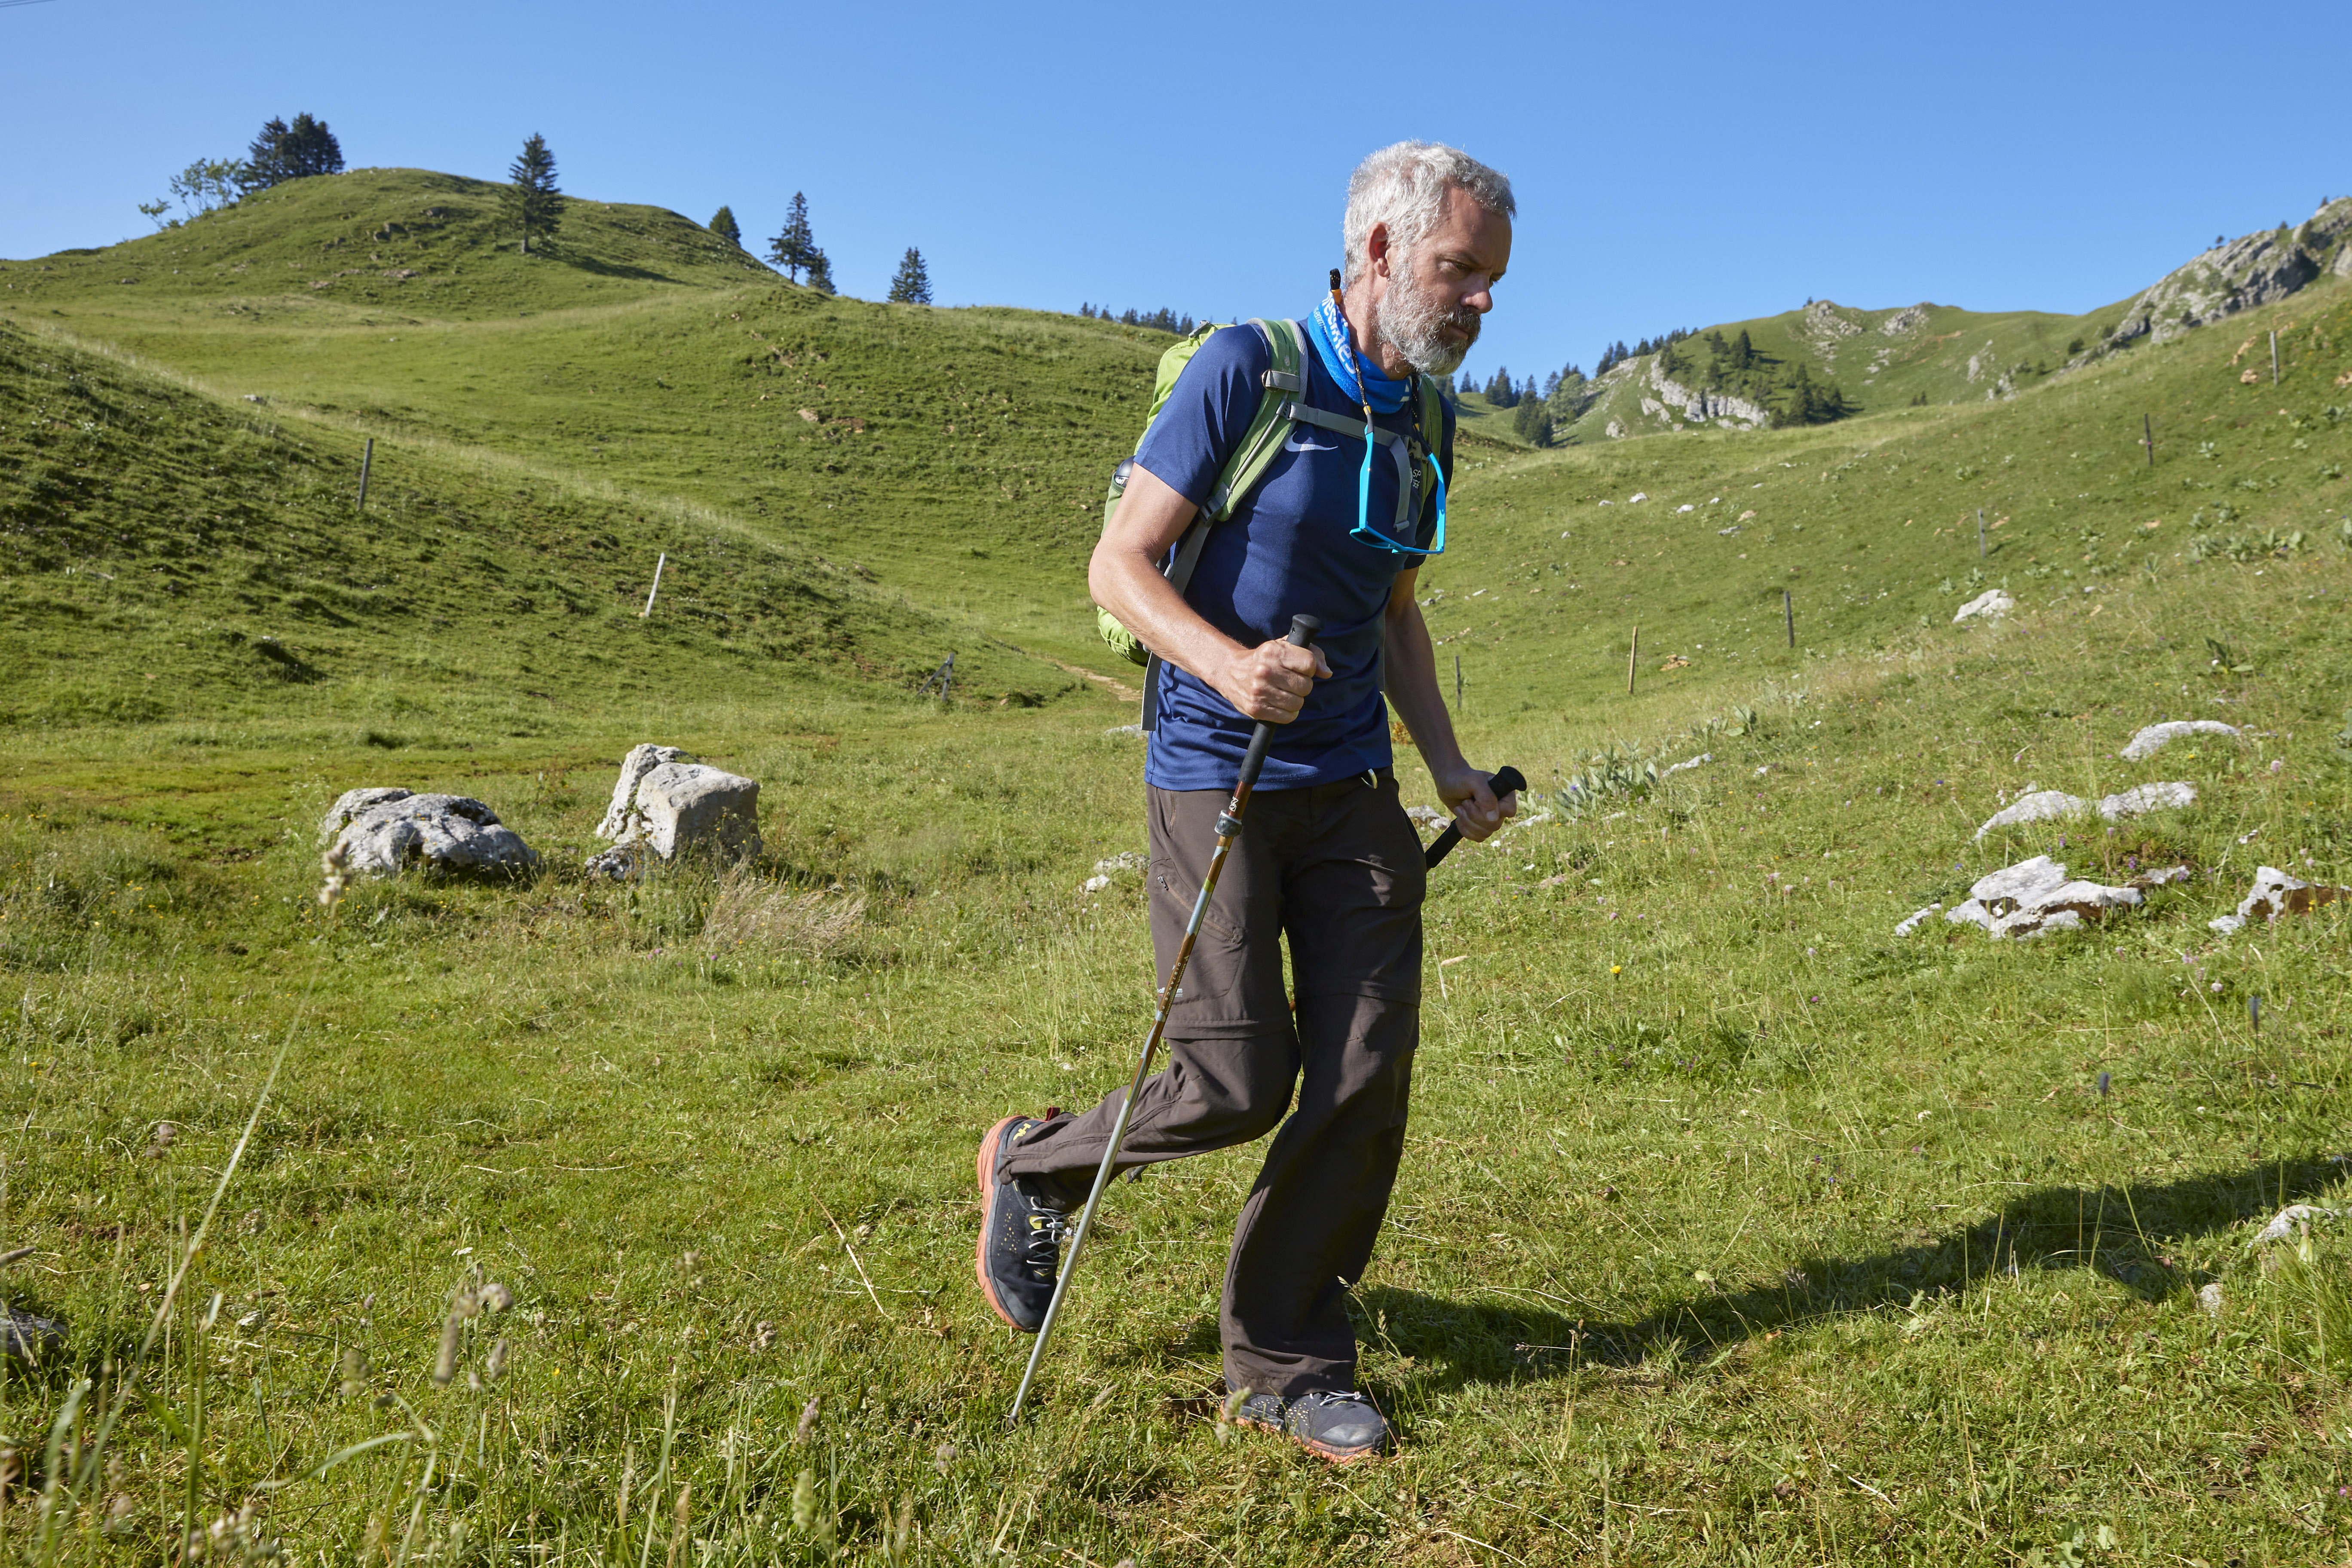 Yves Auberson, who has Parkinson disease and recently walked 1122 kilometres through the Alps, poses in a pasture at La Dole in Cheserex near Geneva, Switzerland, July 19, 2021. REUTERS/Denis Balibouse